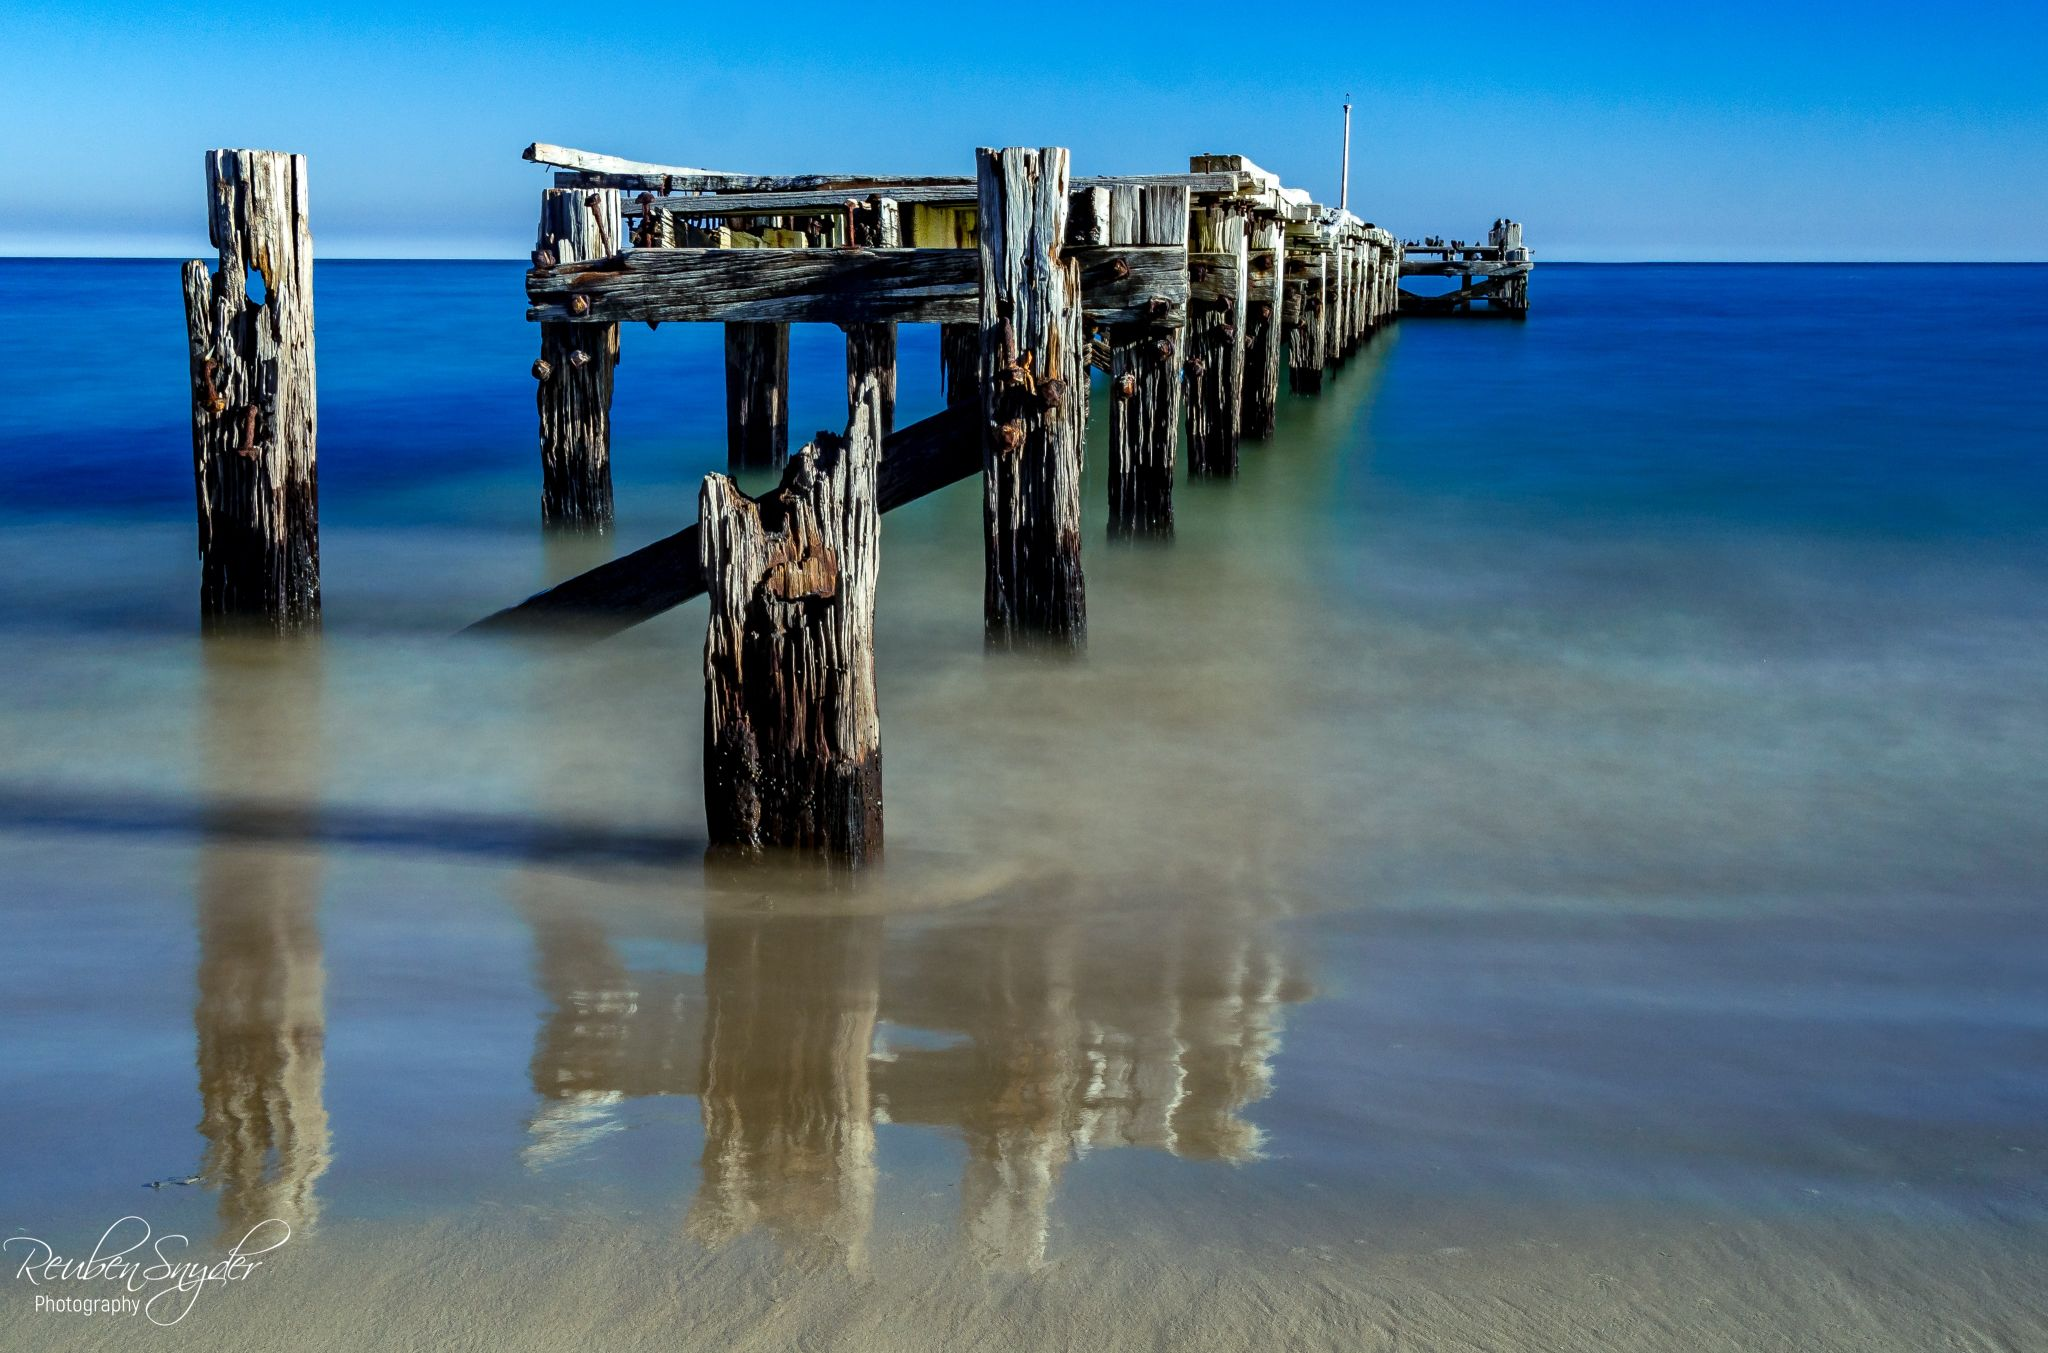 Strand Jetty, South Africa